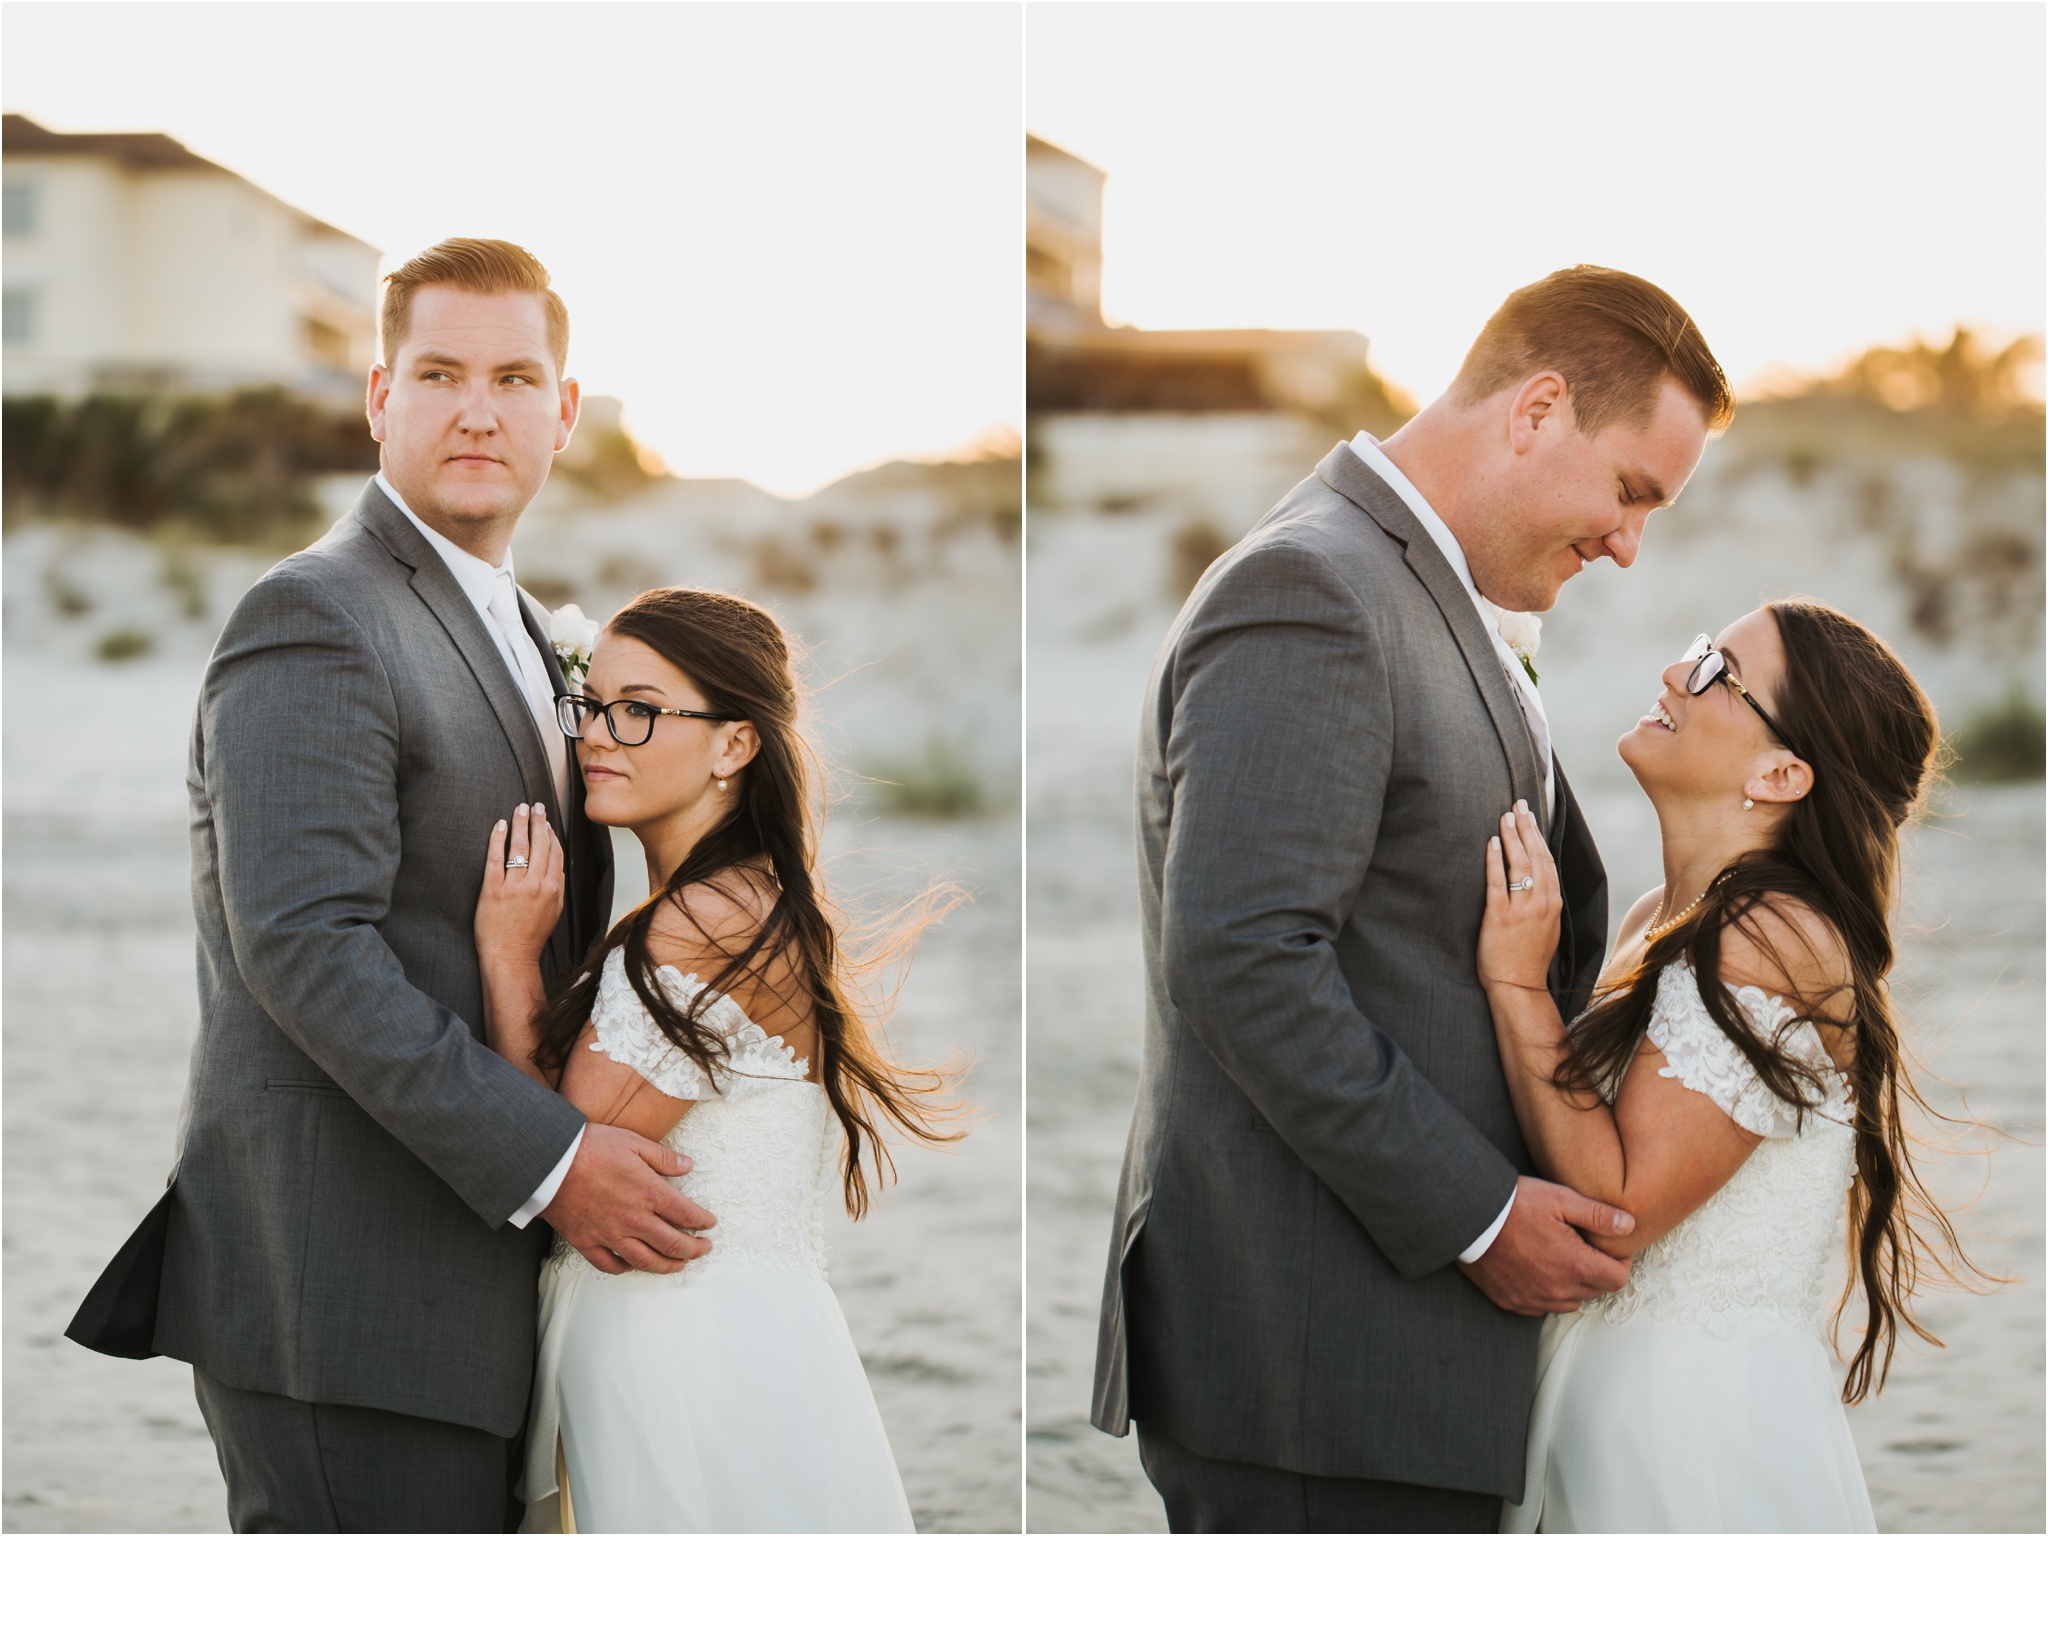 Rainey_Gregg_Photography_St._Simons_Island_Georgia_California_Wedding_Portrait_Photography_1777.jpg